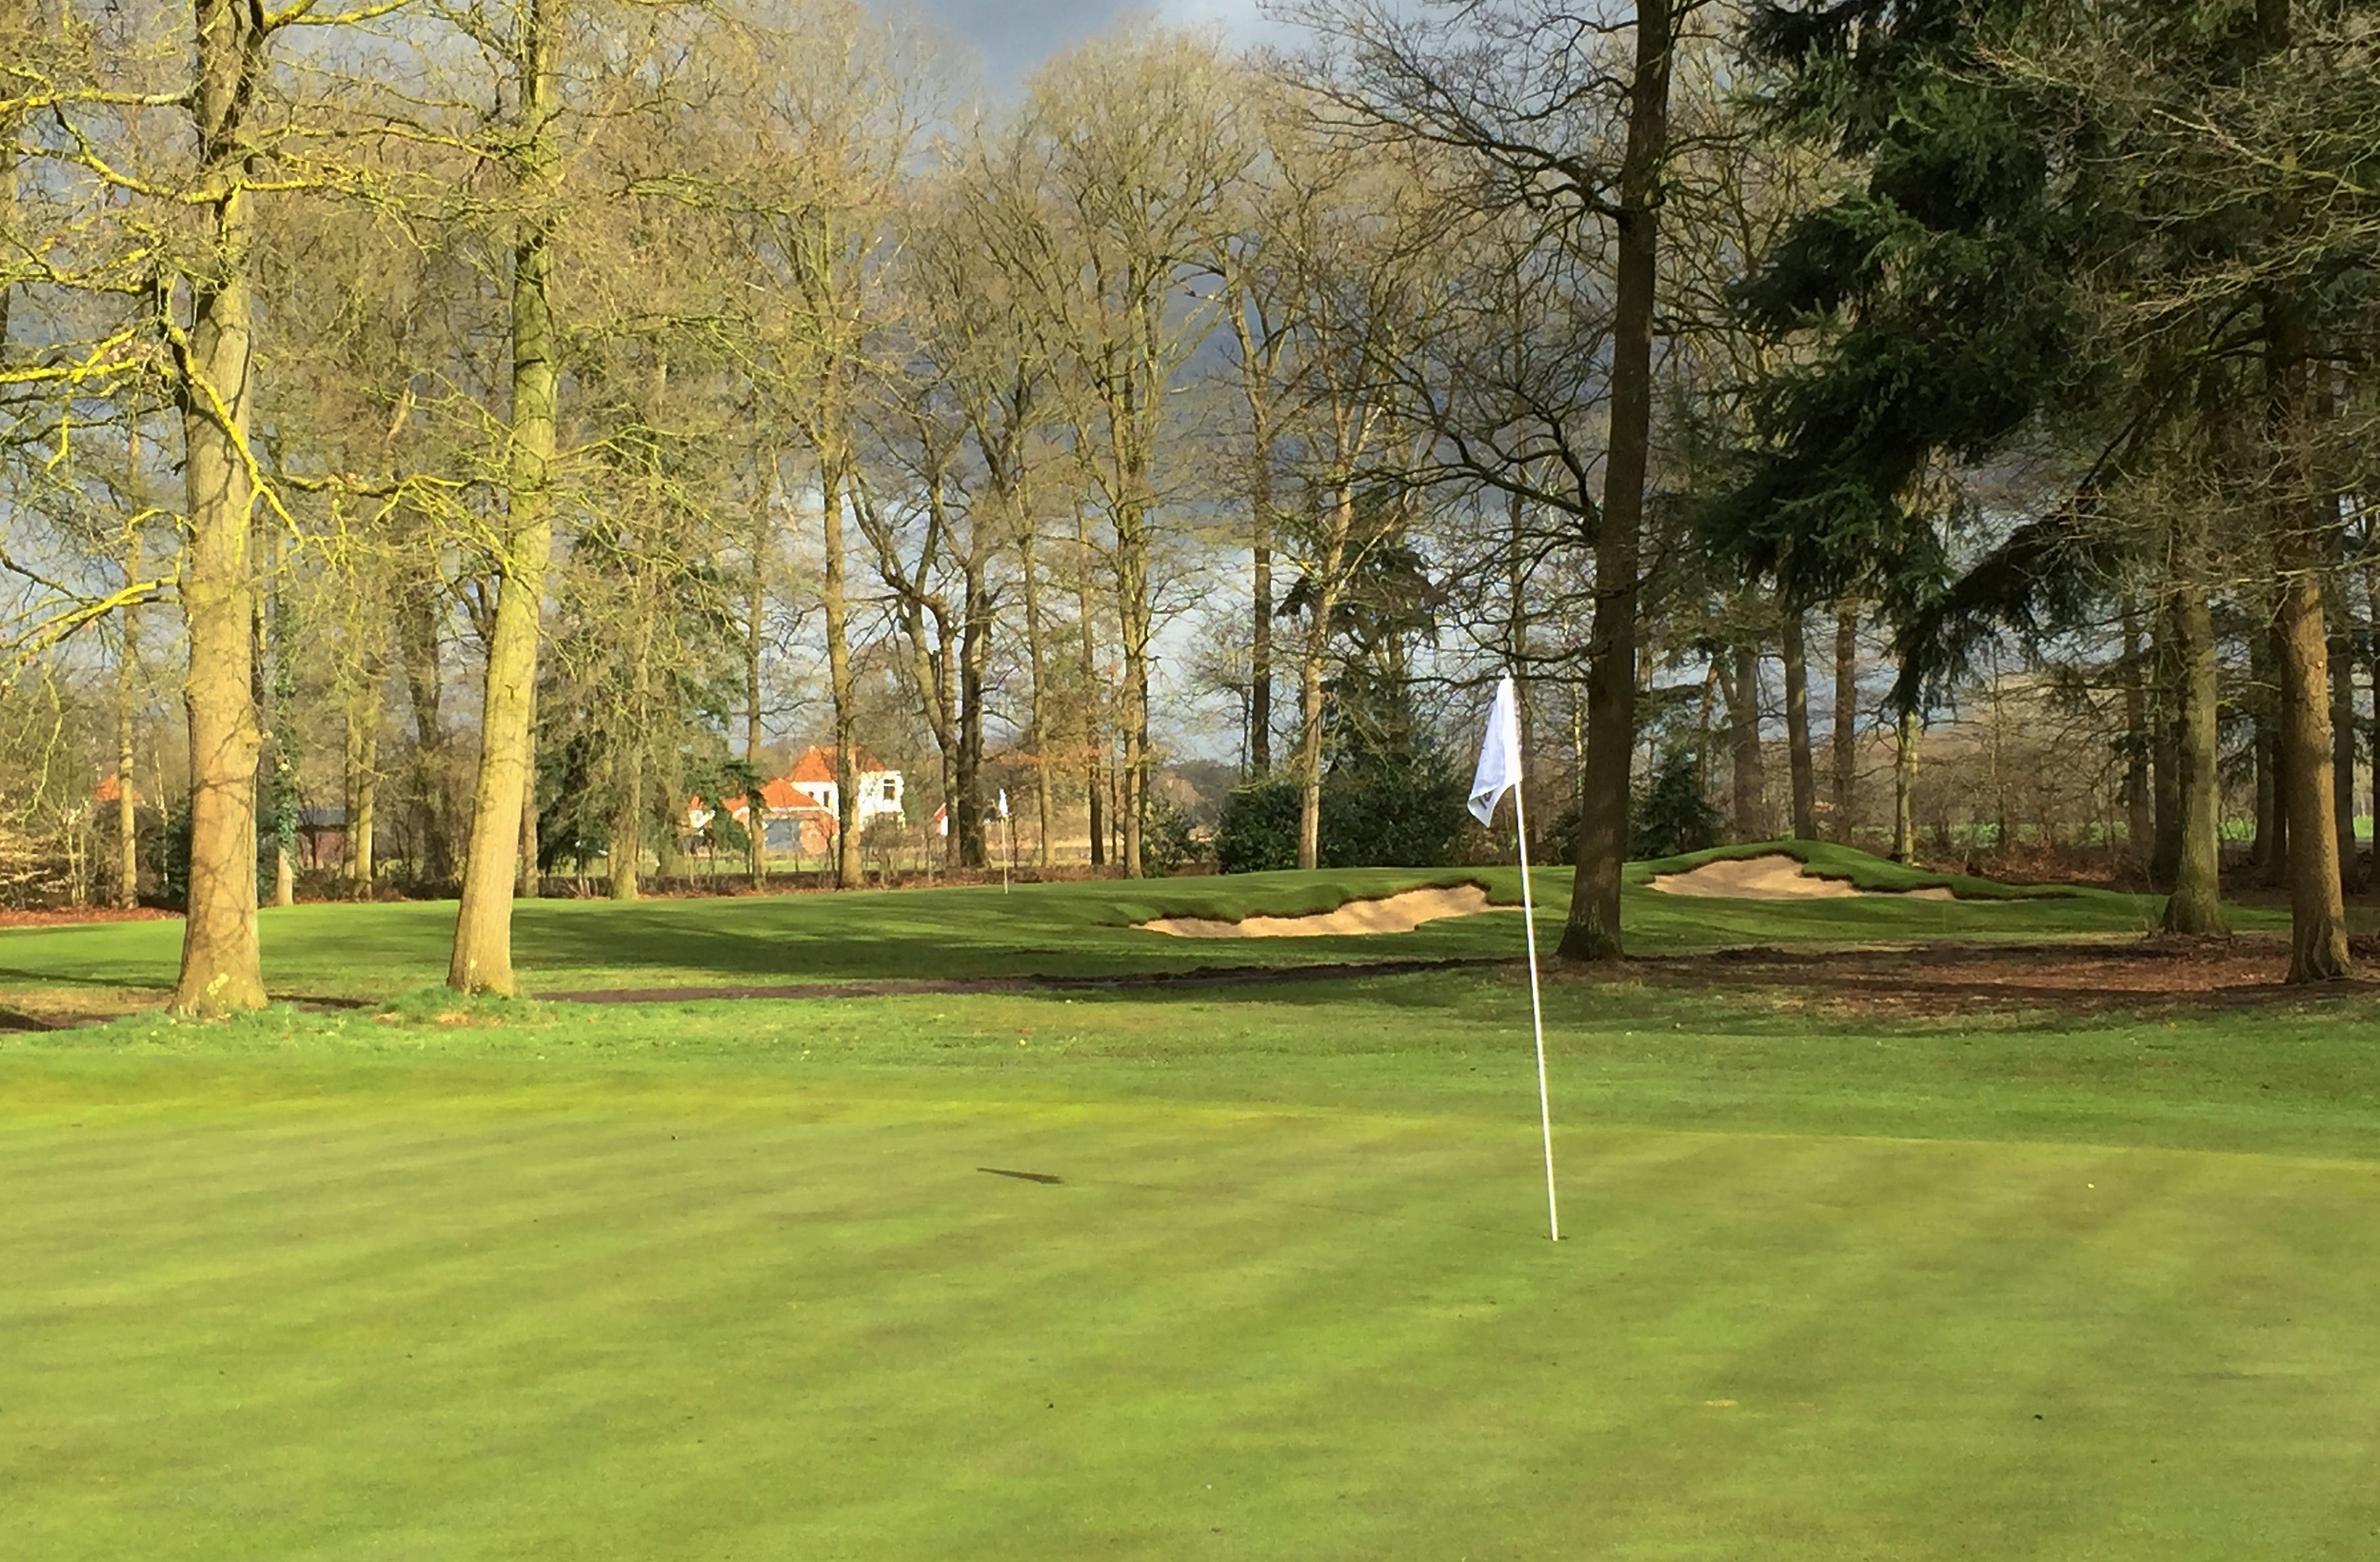 Hole 14 as viewed from the 16th green. Here thepair of bunkers also complement each other well.